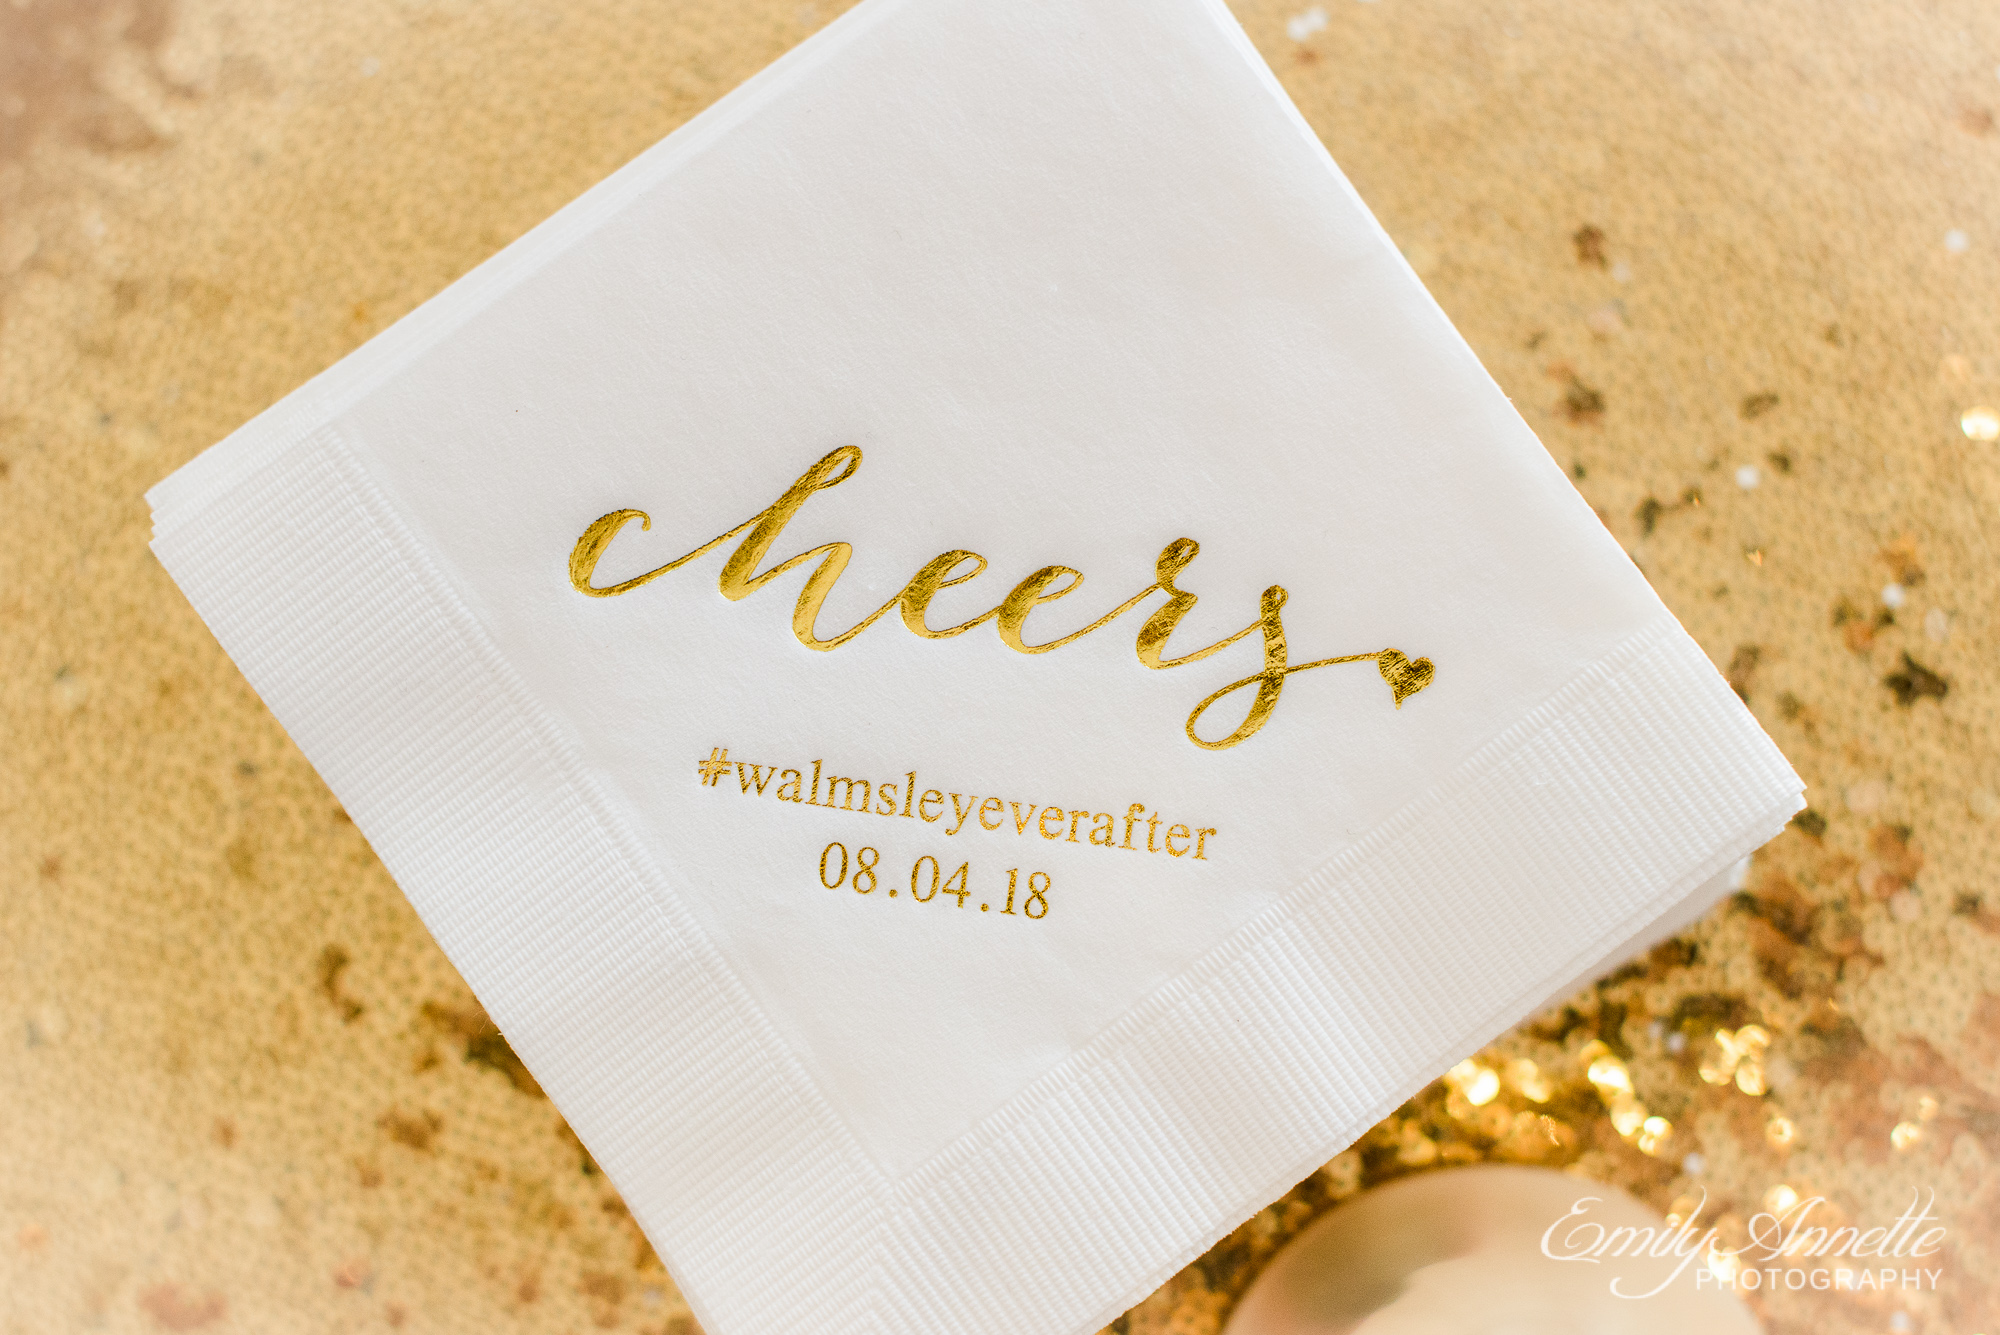 Personalized napkins that say cheers with the wedding date during a reception at Herrington on the Bay in North Beach, Maryland